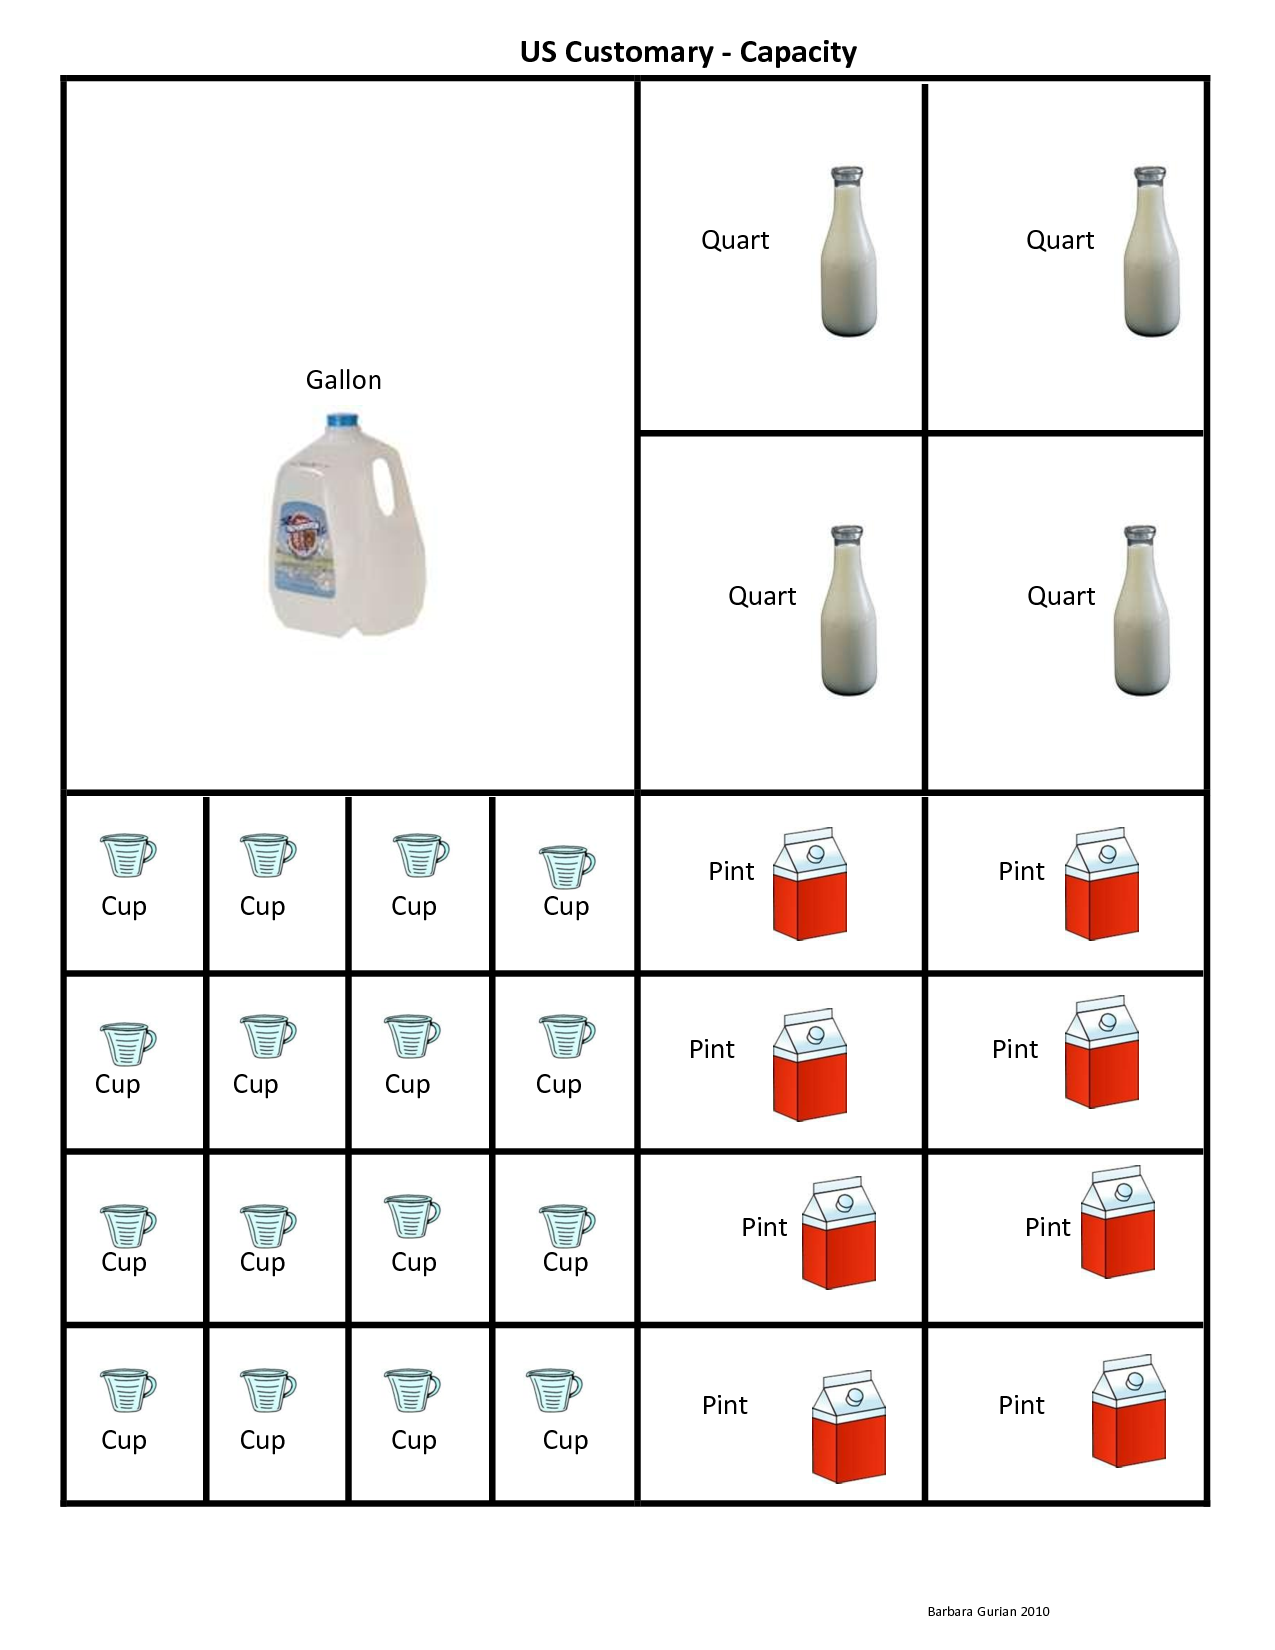 Cup Pint Quart Gallon Conversion Chart Clipart | Math Education ...